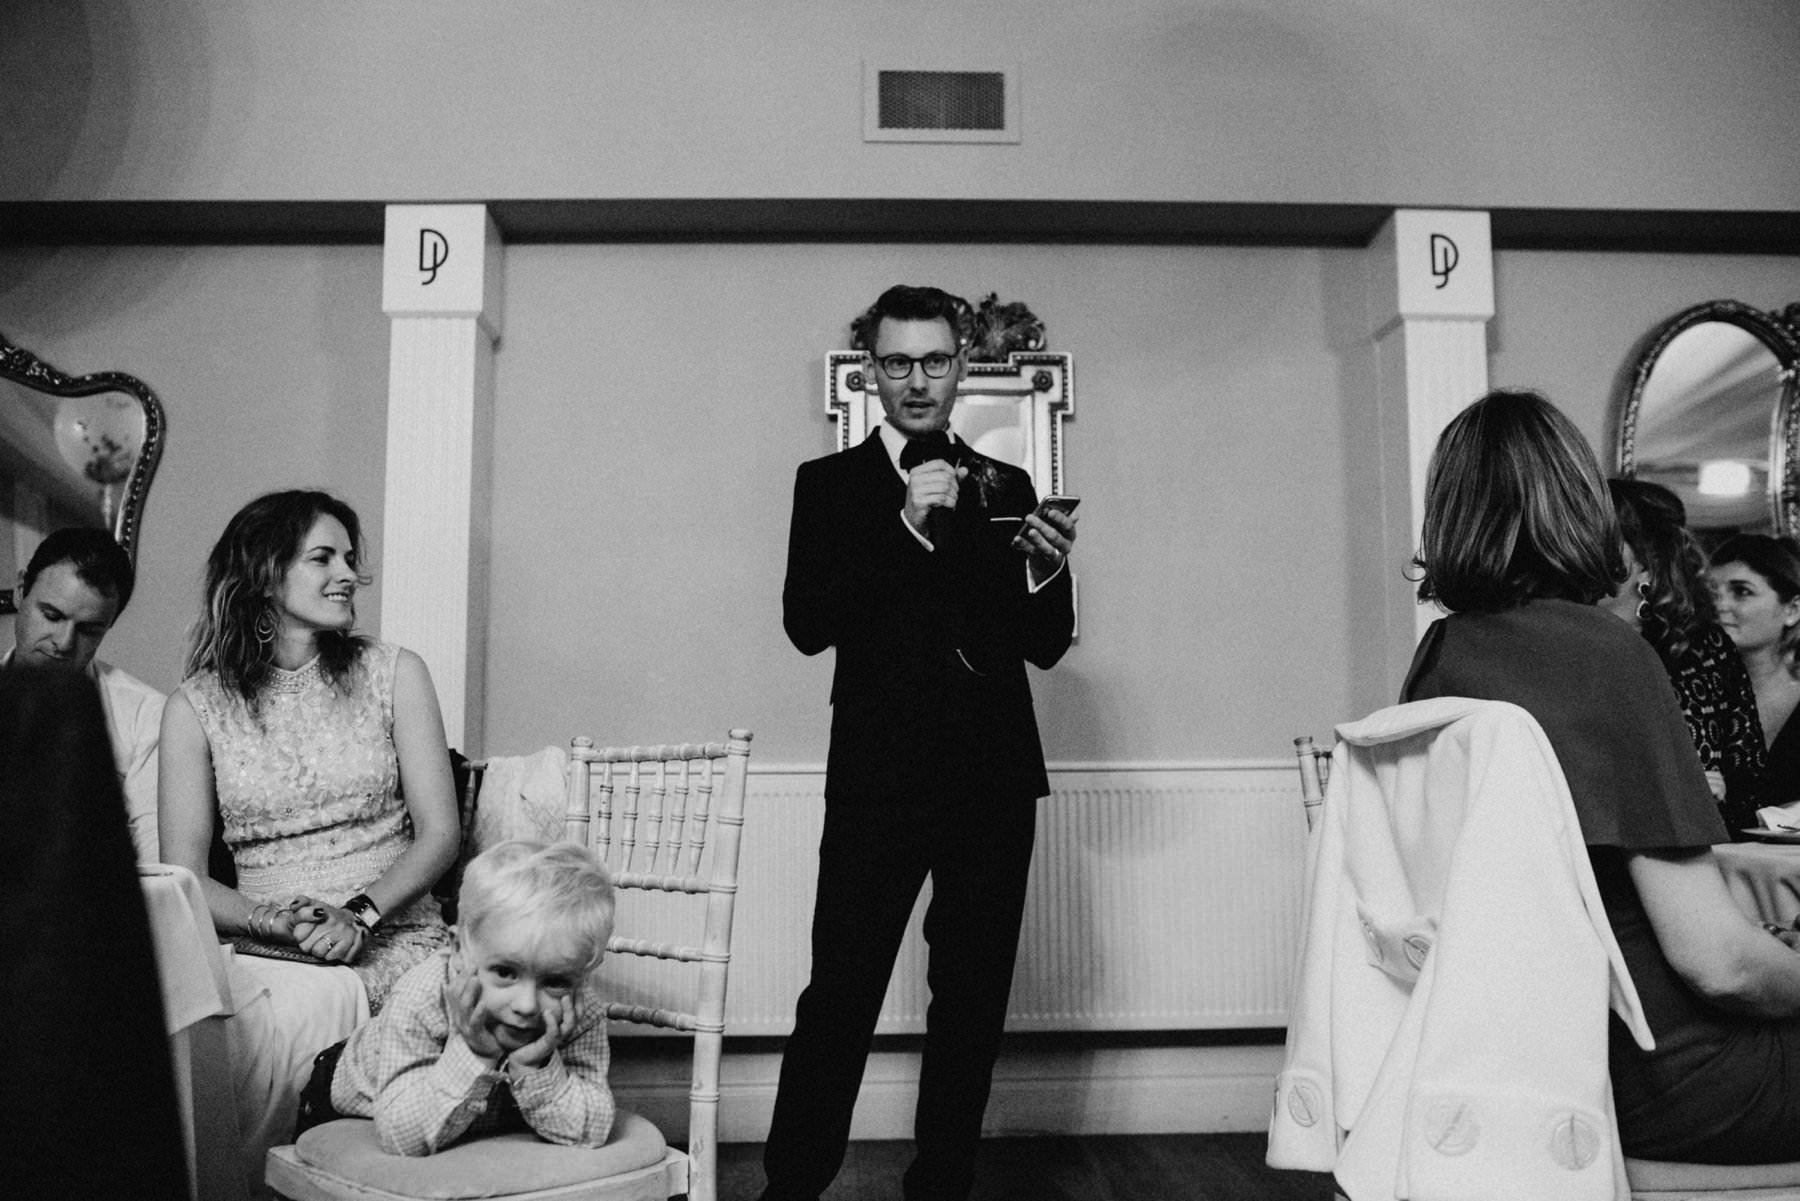 documentary wedding photography, little boy bored as groom makes speeches